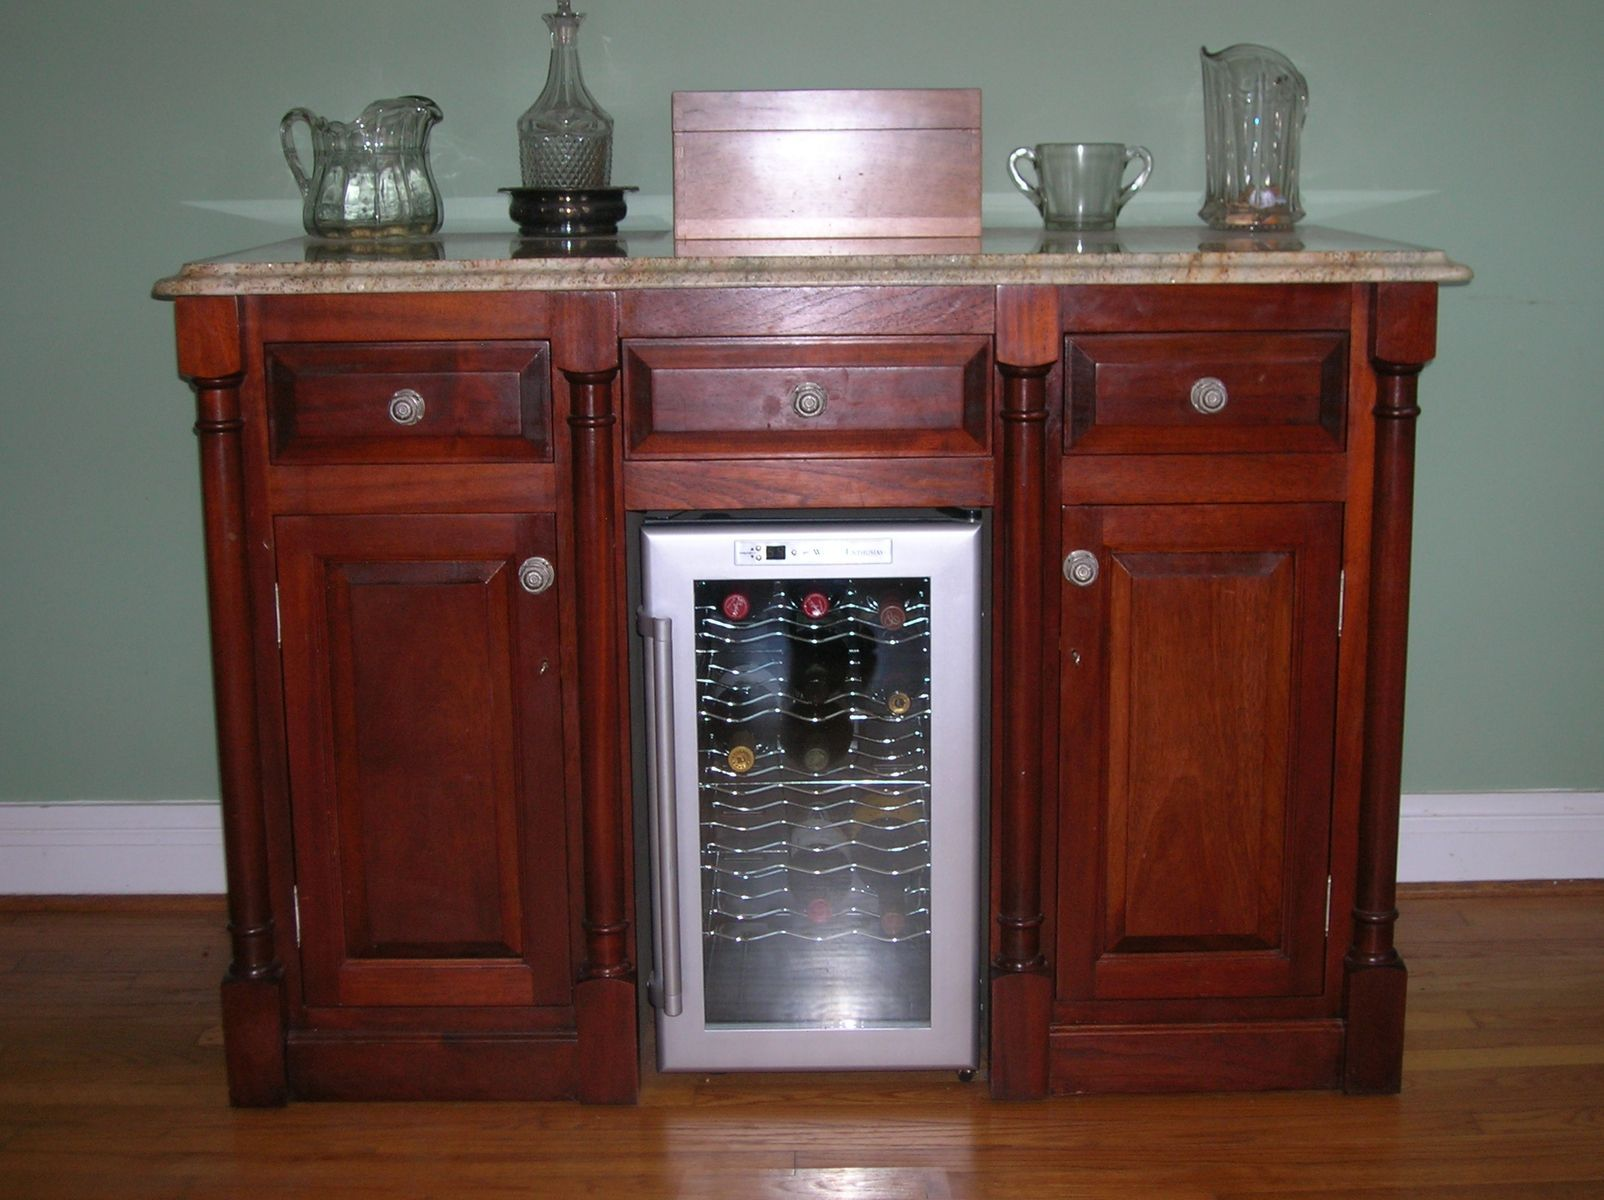 Home Bar with Wine Refrigerator More Home Bar Ideas here